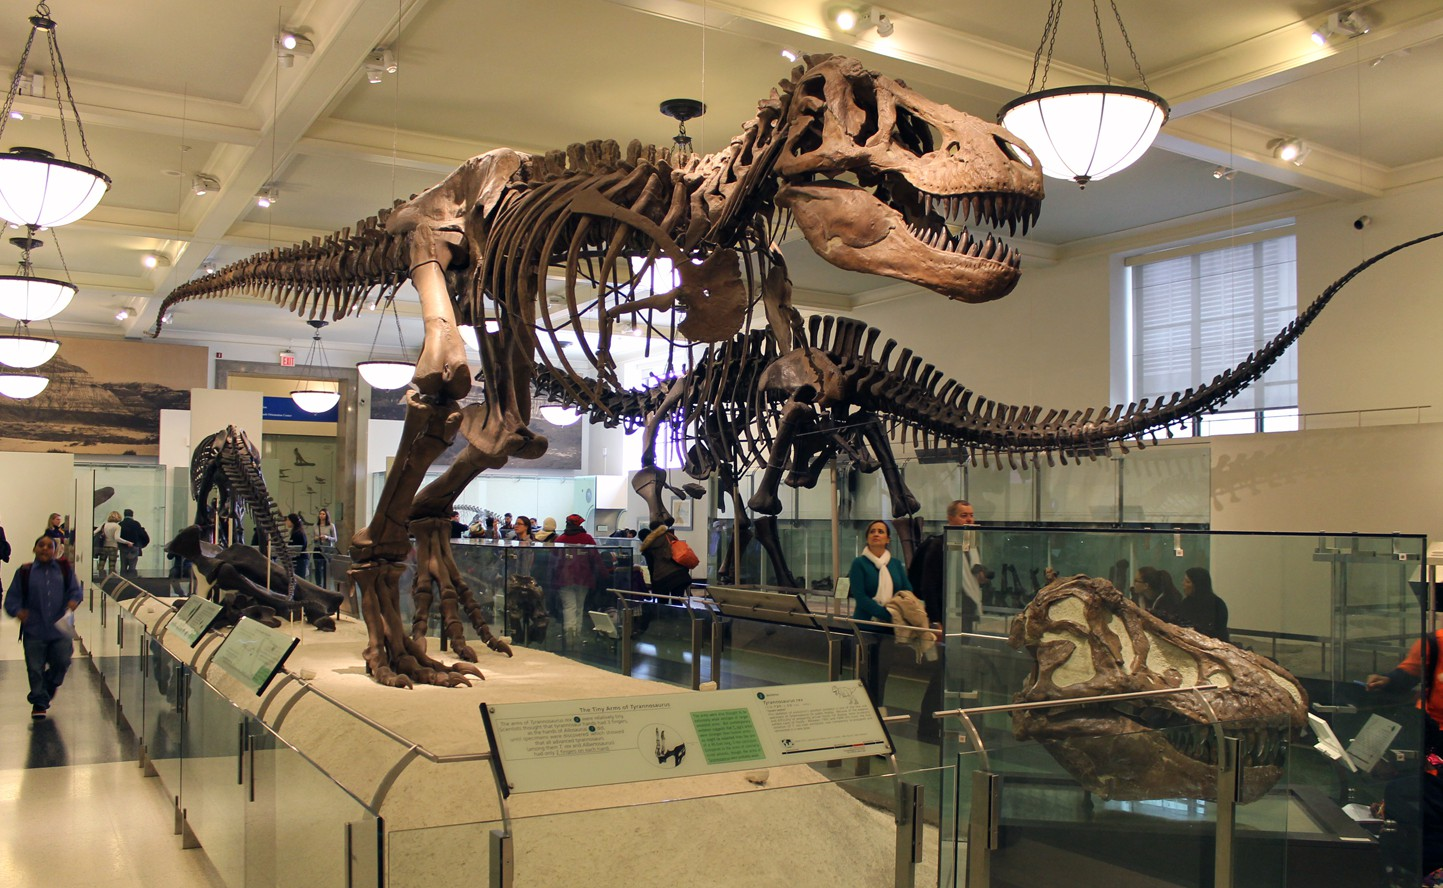 American Museum of Natural History - The Best?